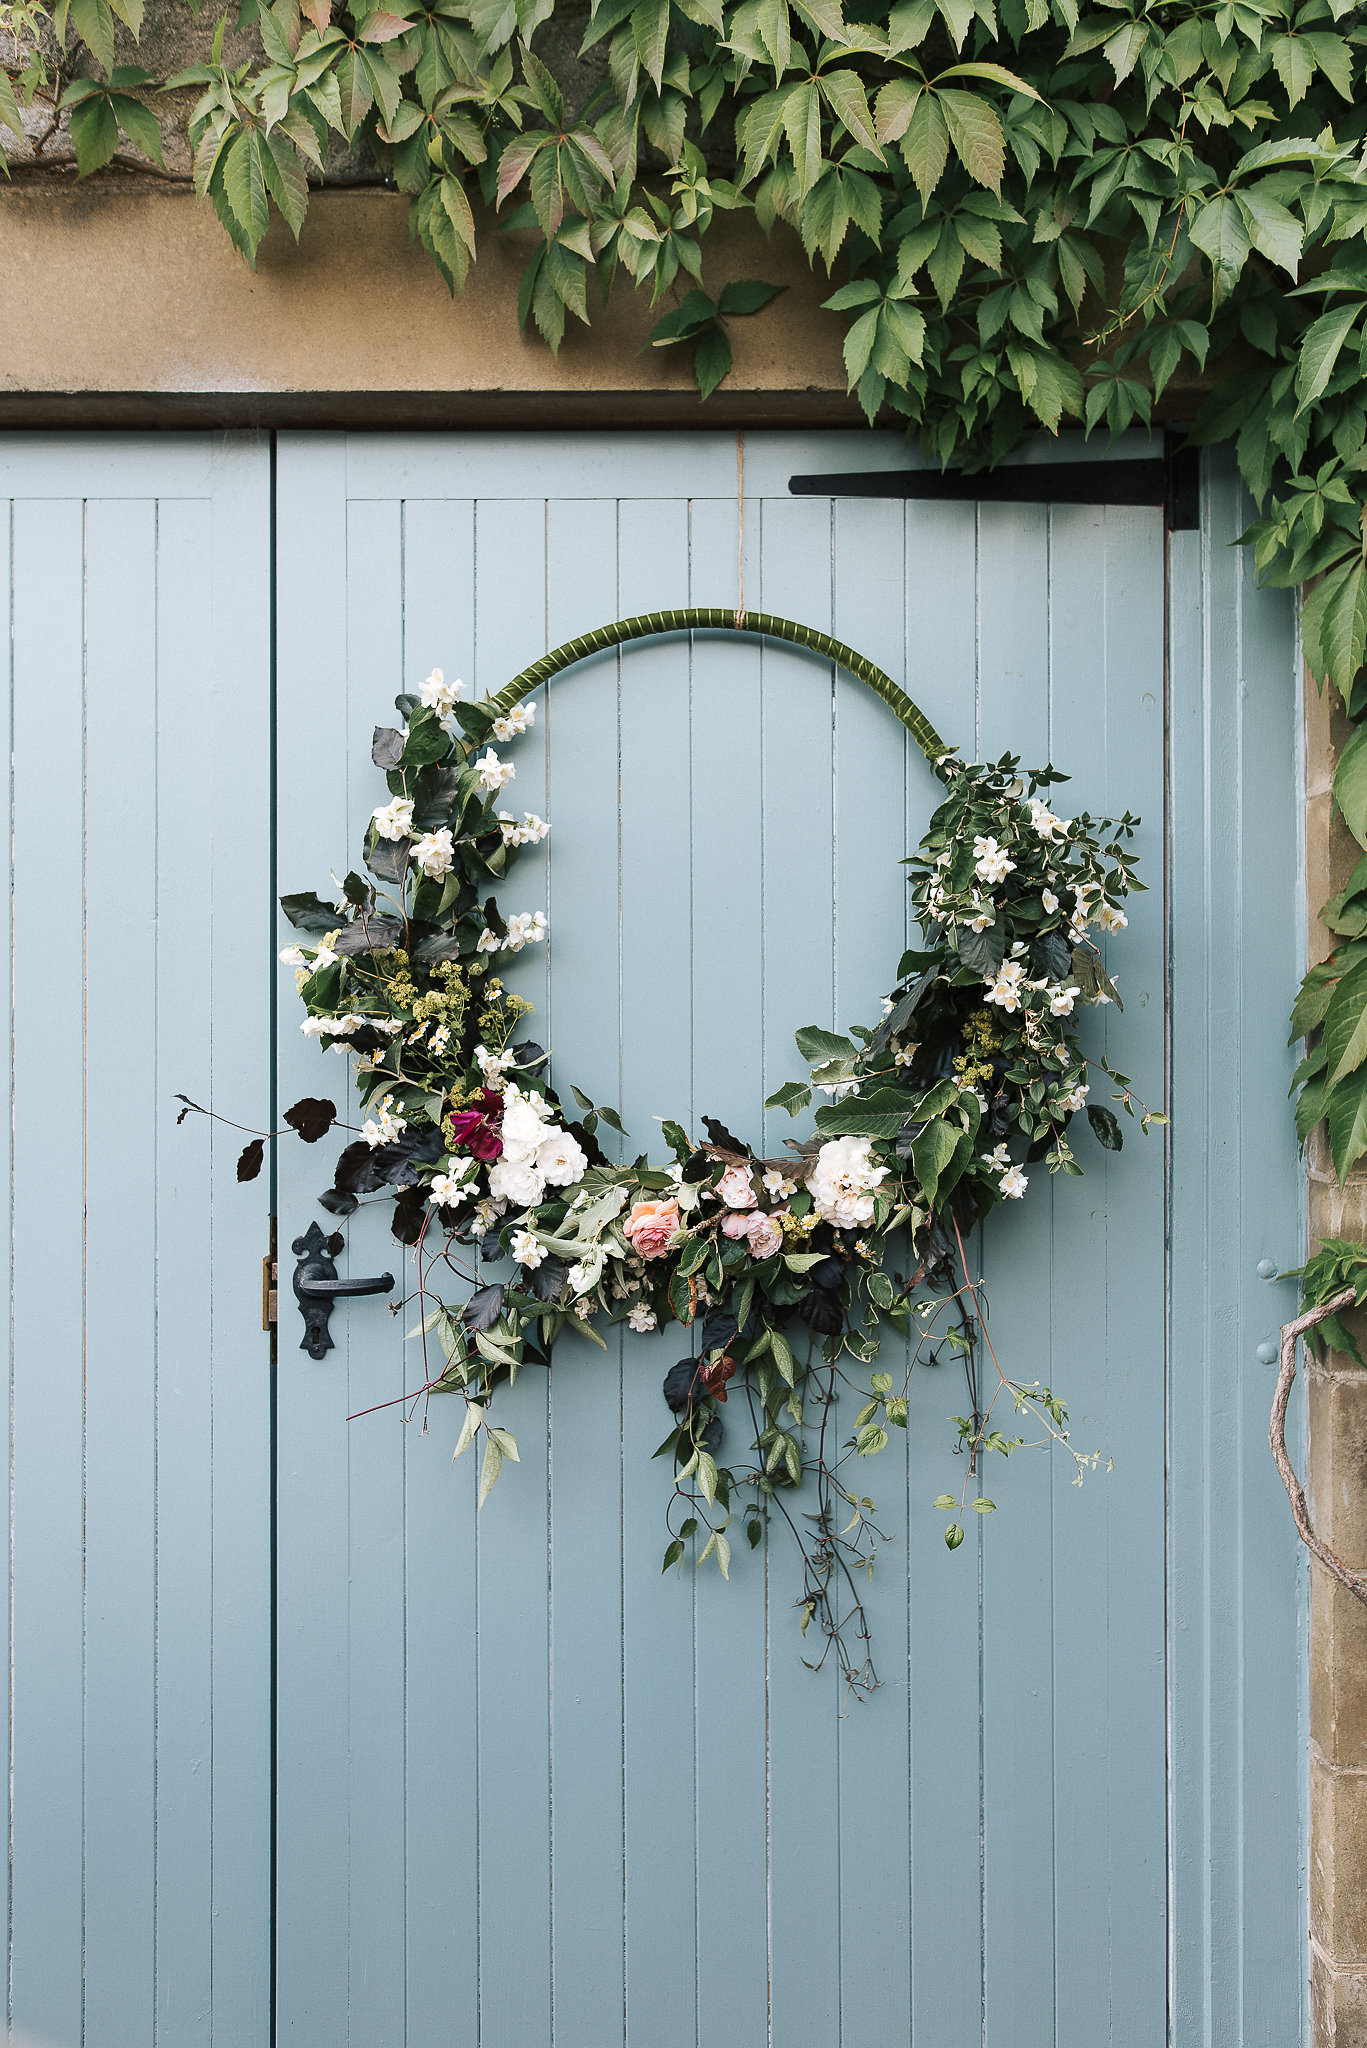 Floral hoop decoration - using British grown flowers